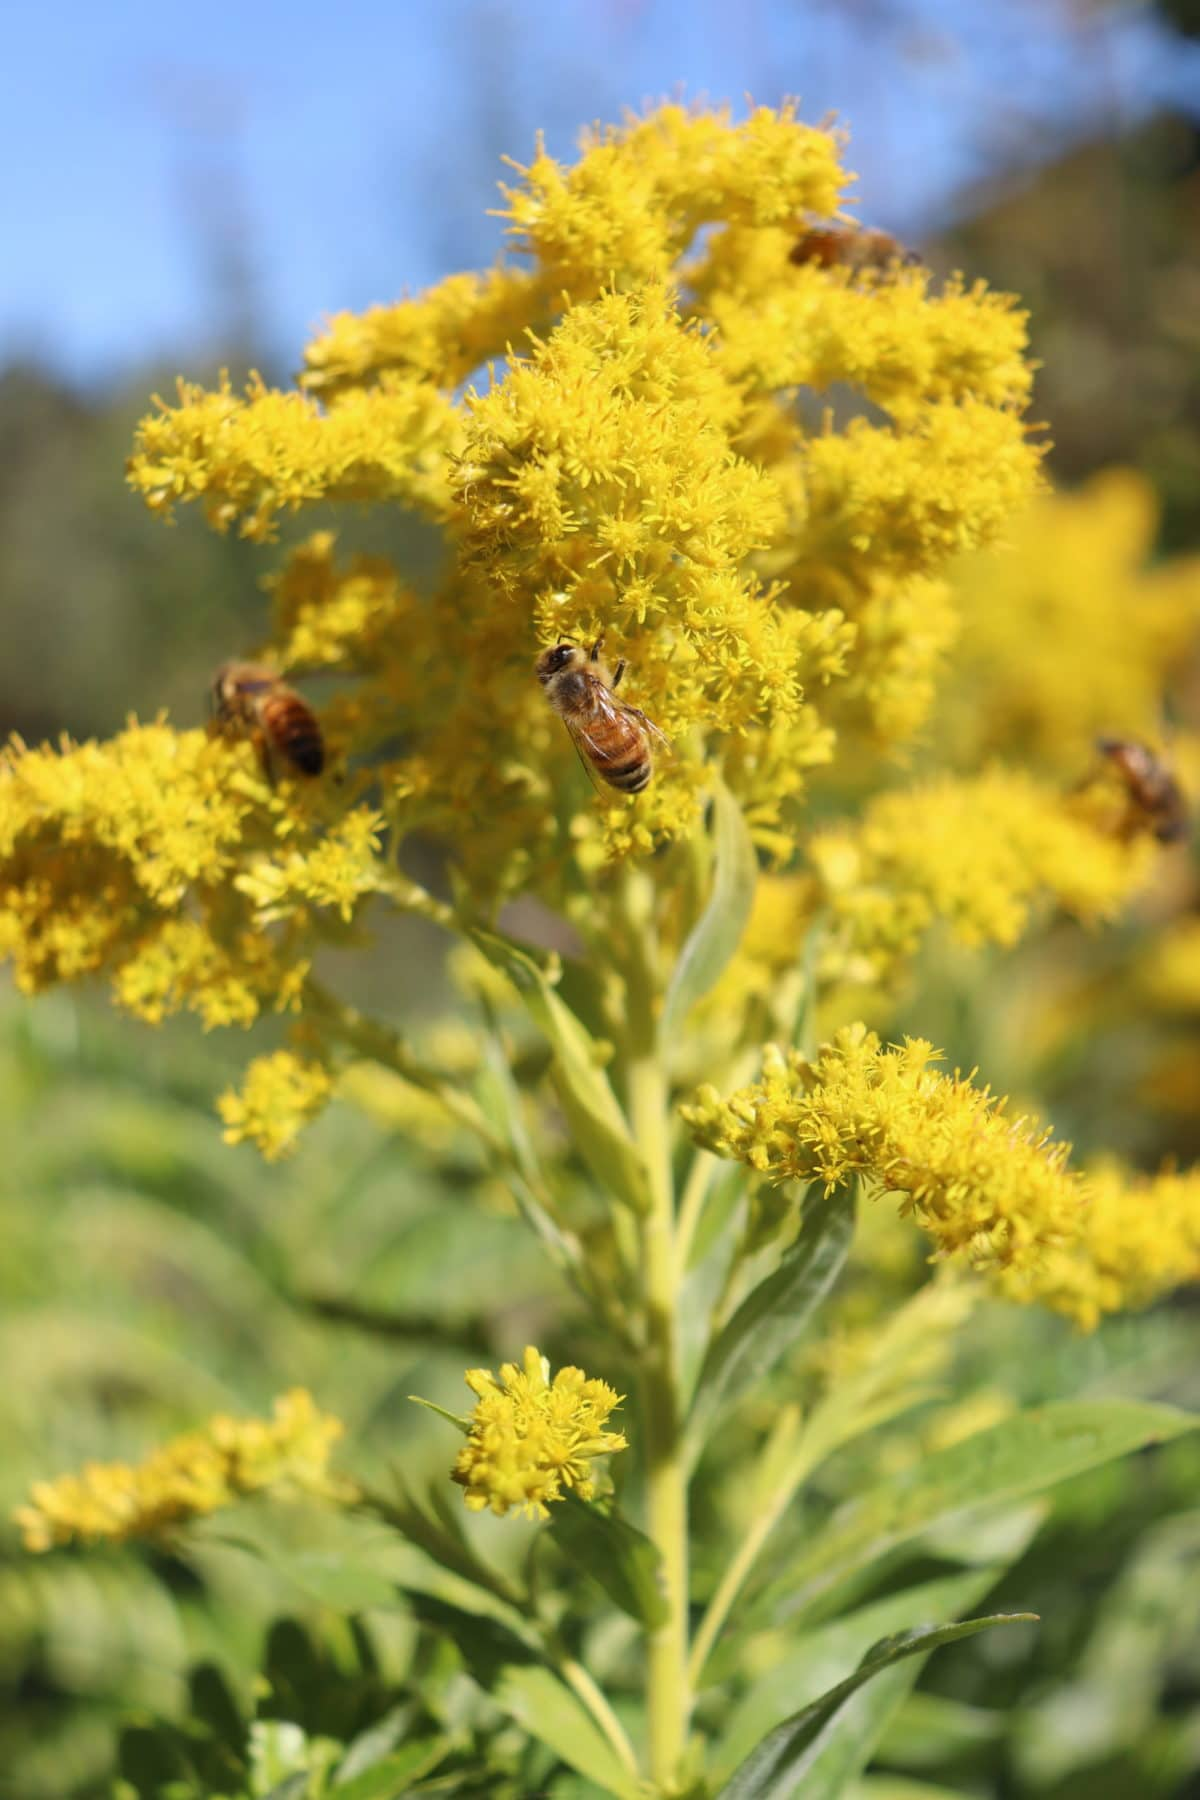 golden rod is a covered in bees when it flowers in autumn